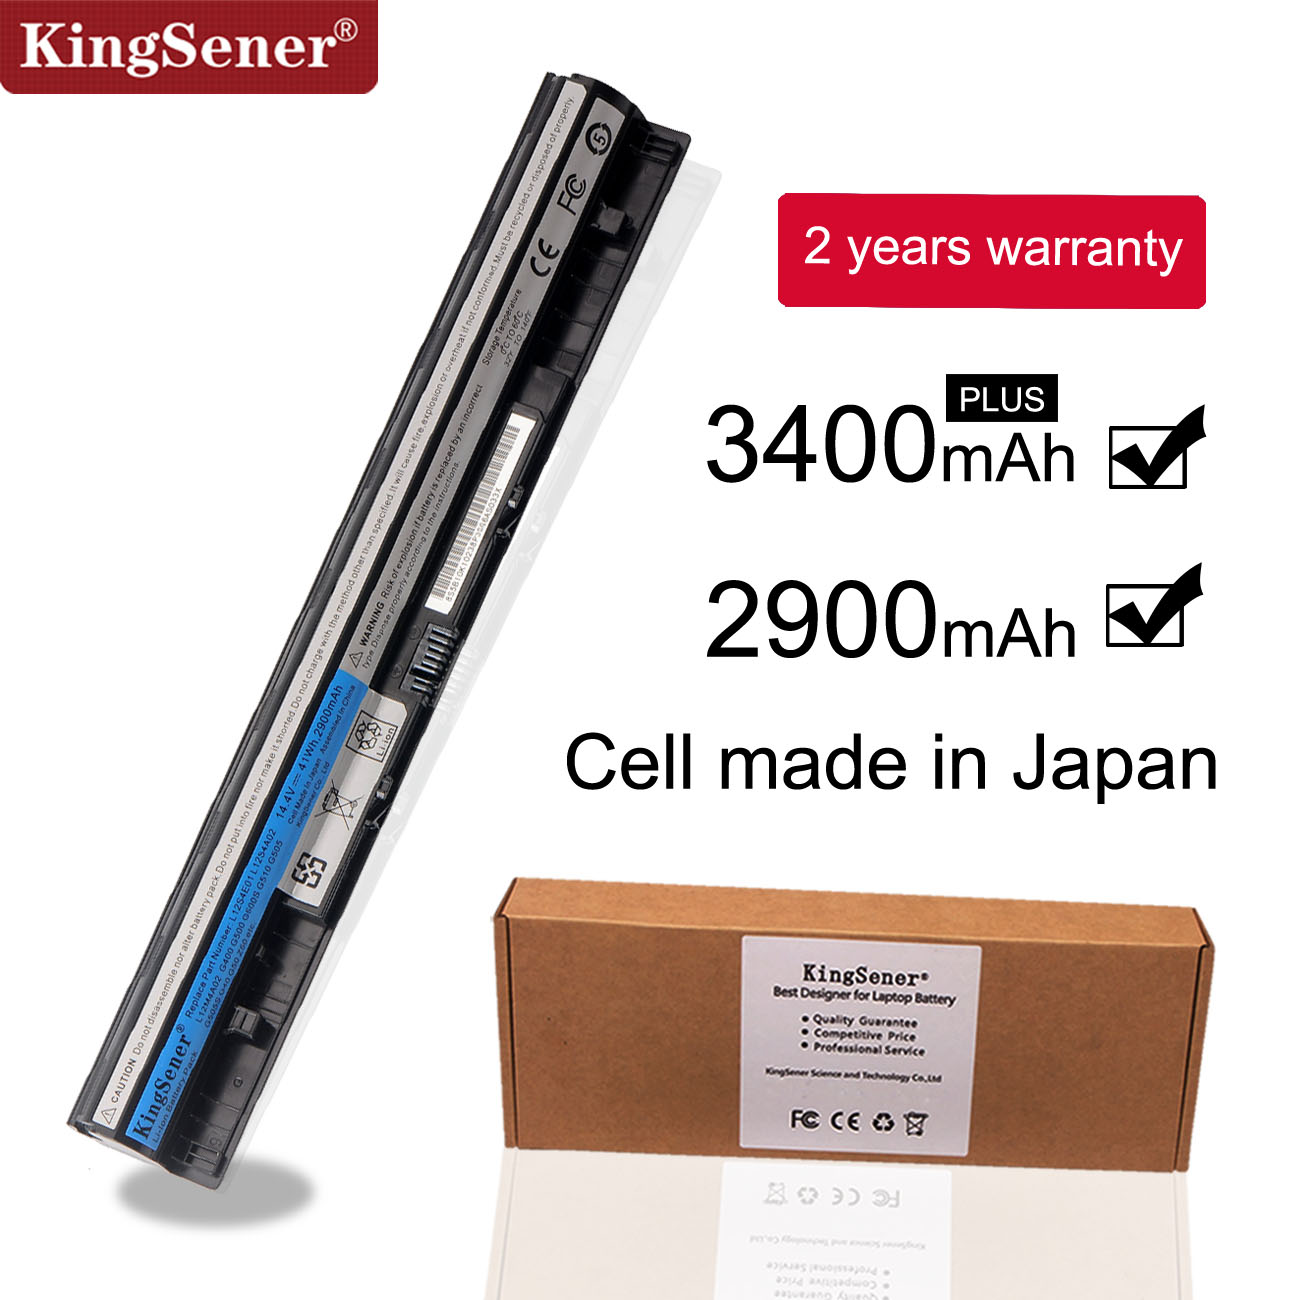 KingSener L12S4E01 Laptop Battery For Lenovo Z40 Z50 G40-45 G50-30 G50-70 G50-75 G50-80 G400S G500S L12M4E01 L12M4A02 L12S4A02